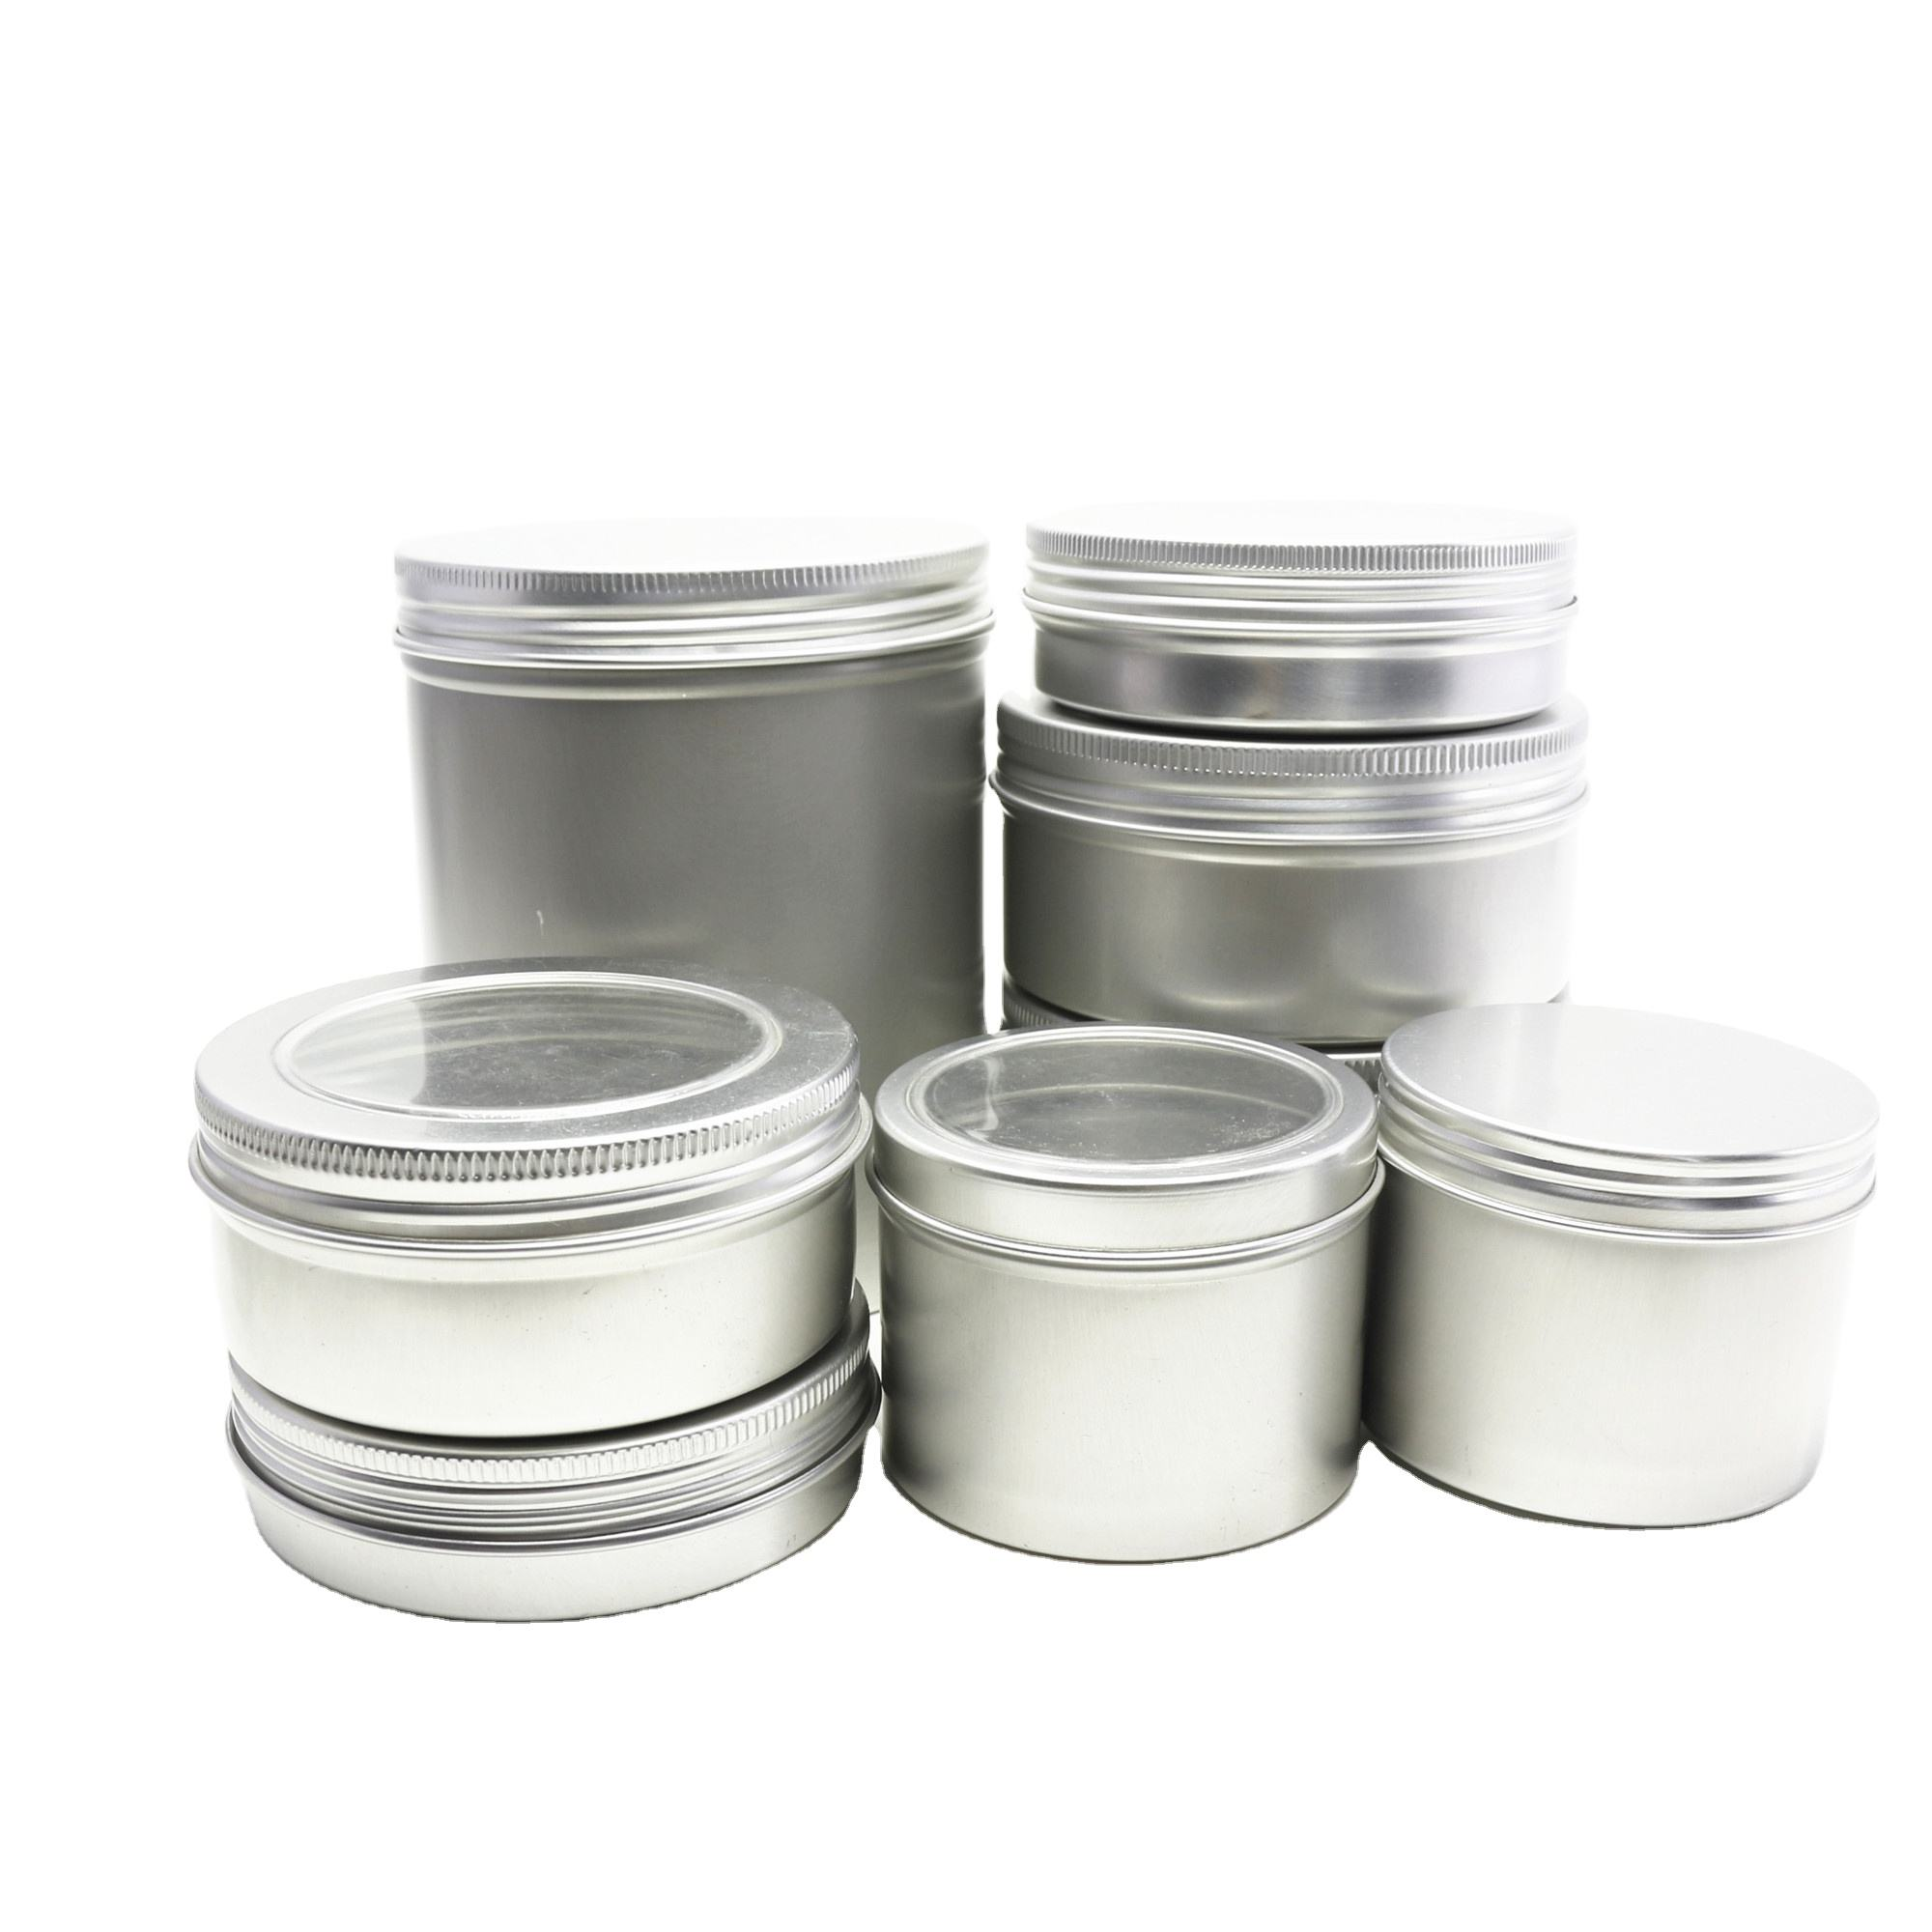 5ml10ml15m20ml30ml50ml60ml80ml100ml150ml200ml300ml500ml750ml1000ml wax cosmetic tea candle aluminum jar Tin box AT-67K